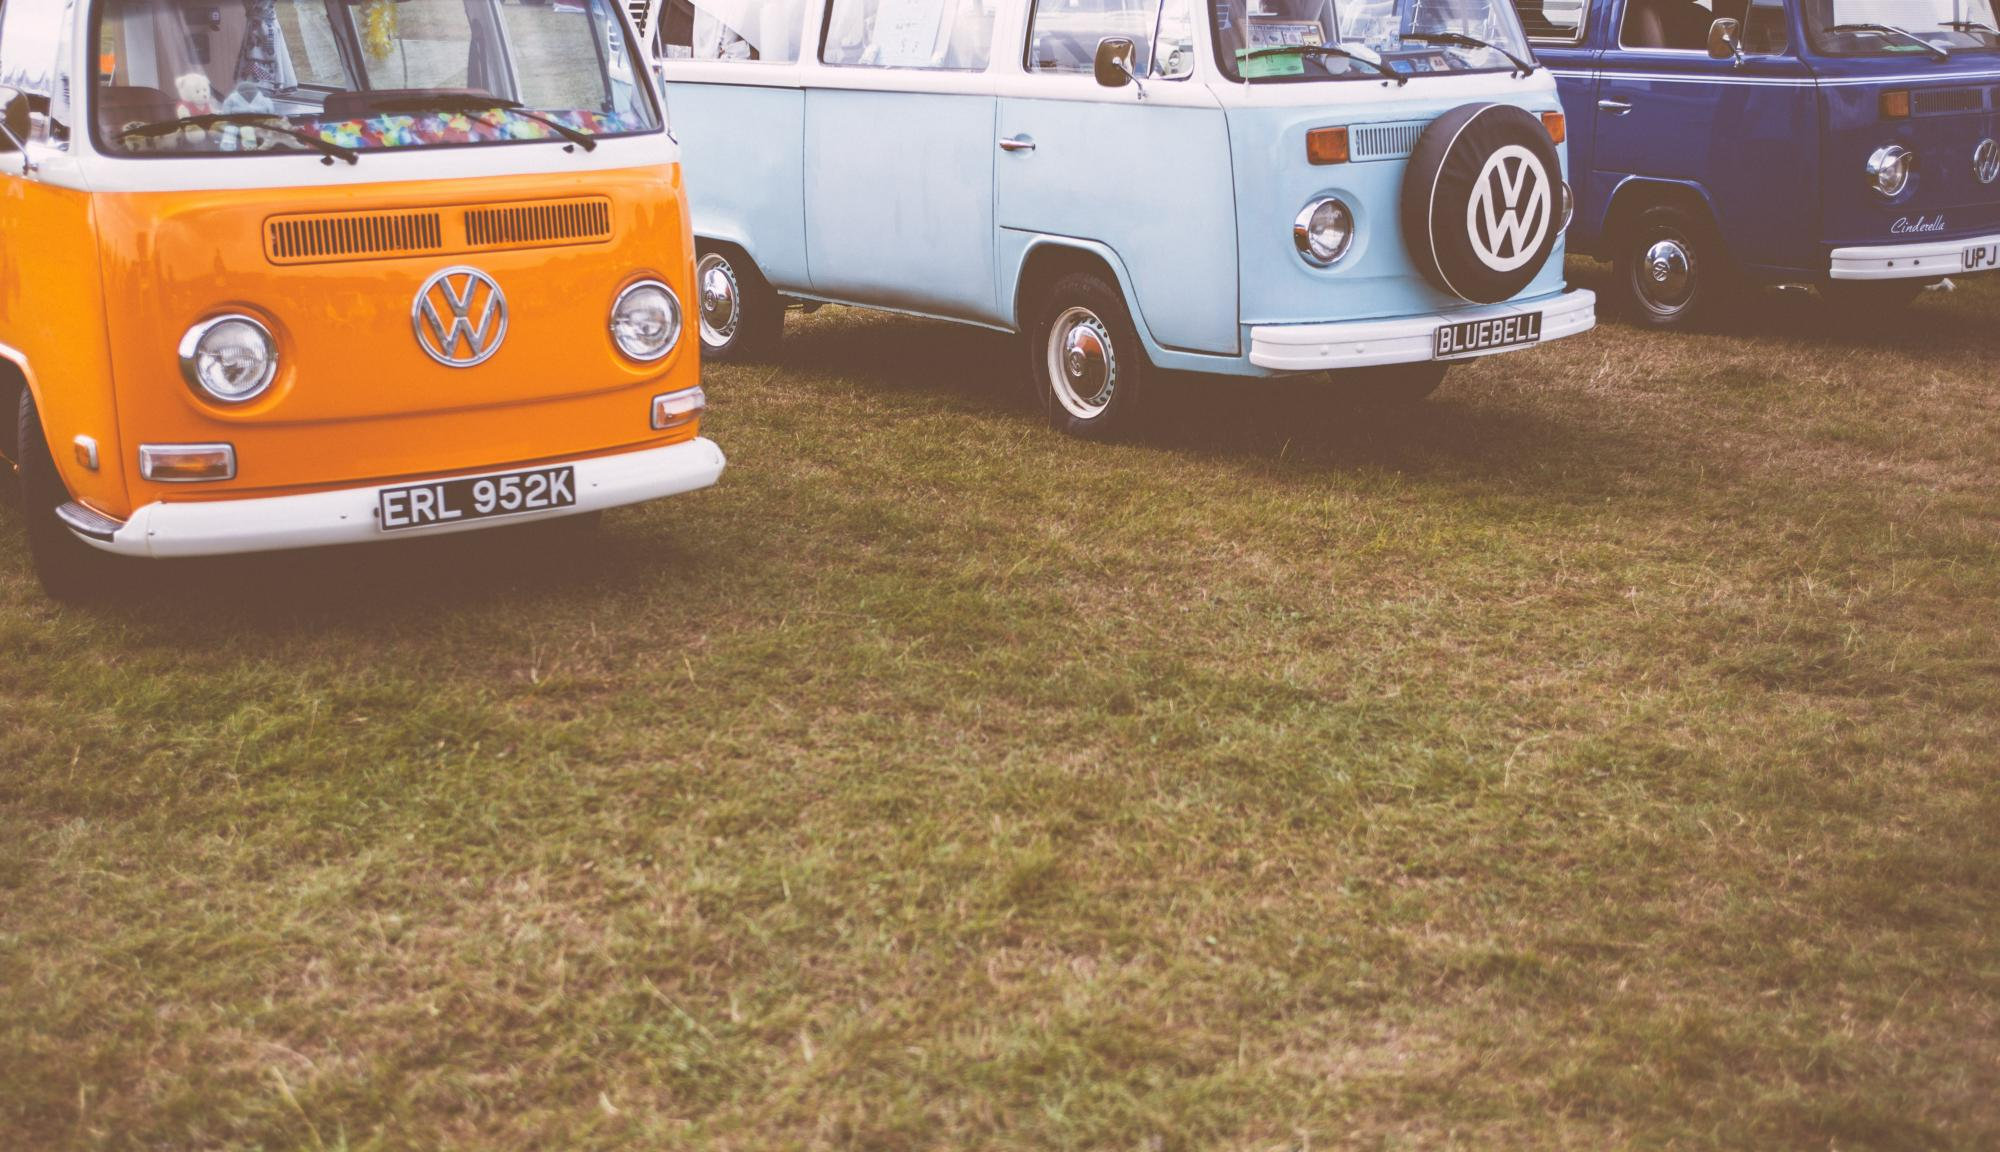 Campervan Hire in Swindon | Motorhome Rental in Swindon